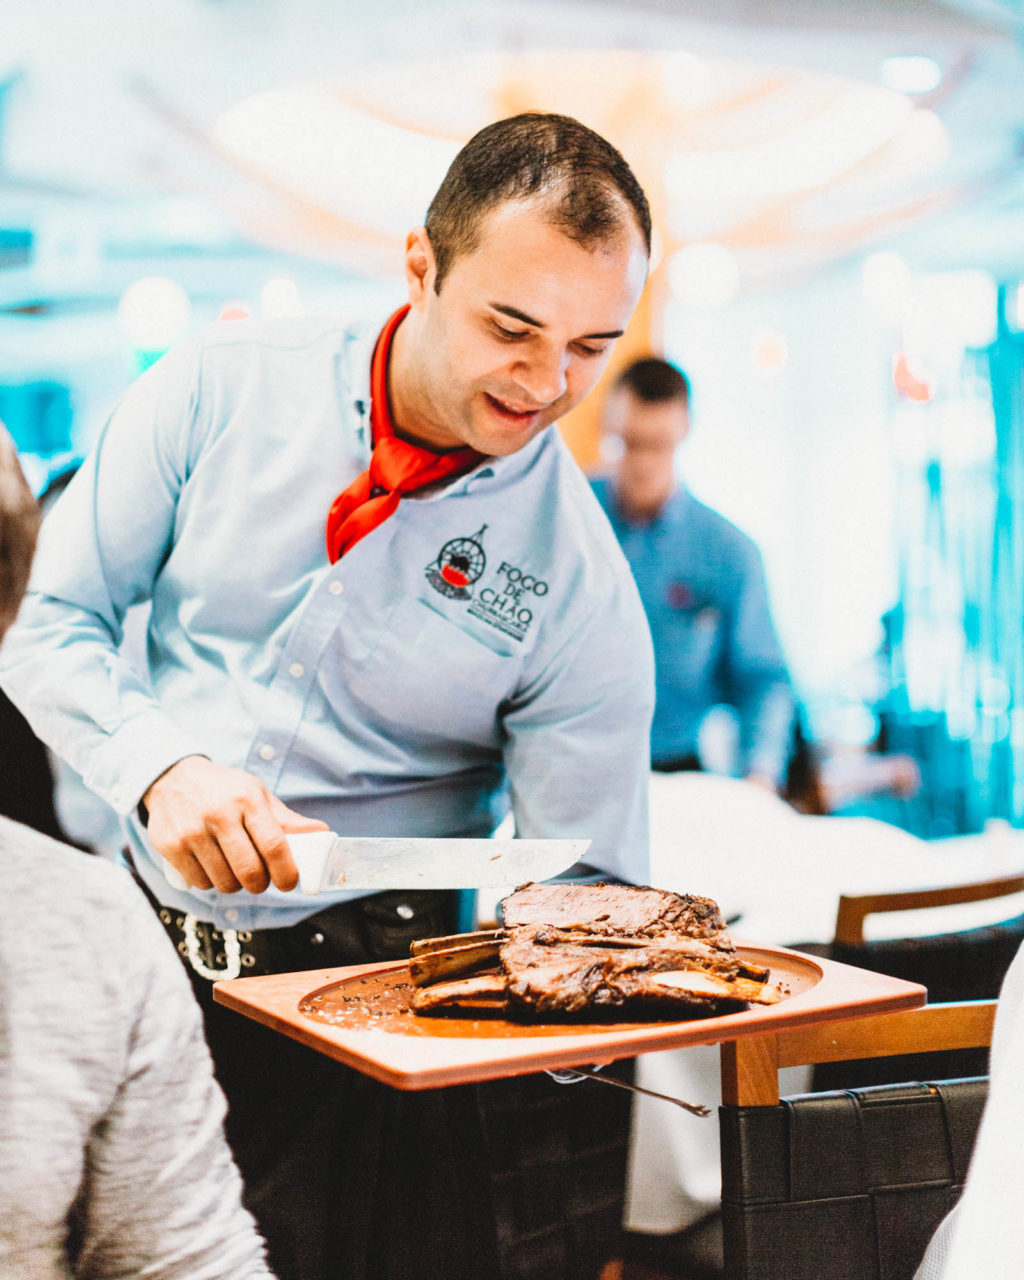 Fogo de Chão Brazilian Steakhouse features all-you-can-eat meat carved tableside